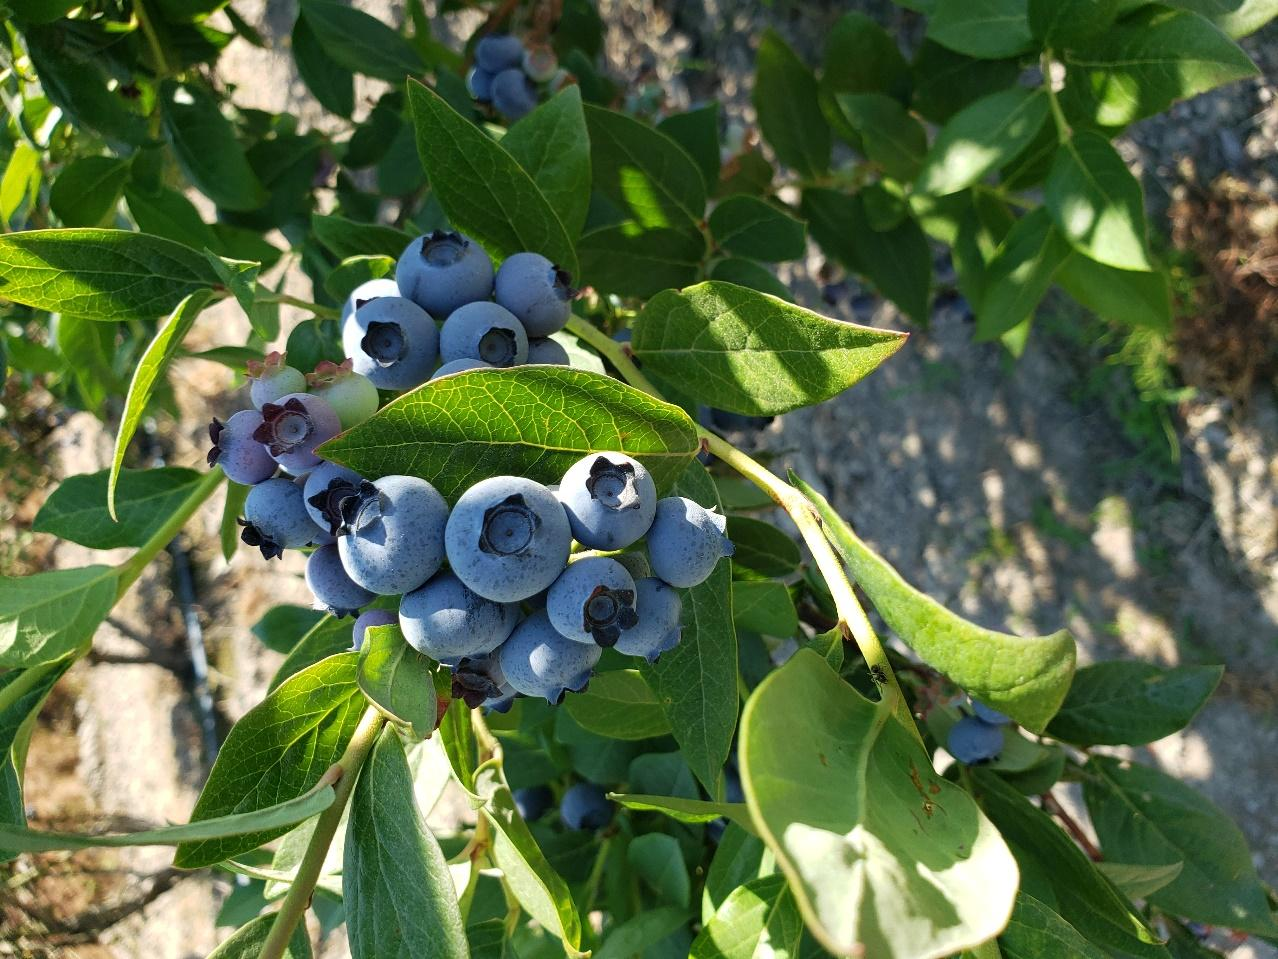 A cluster of blue berries on a plant  Description automatically generated with low confidence